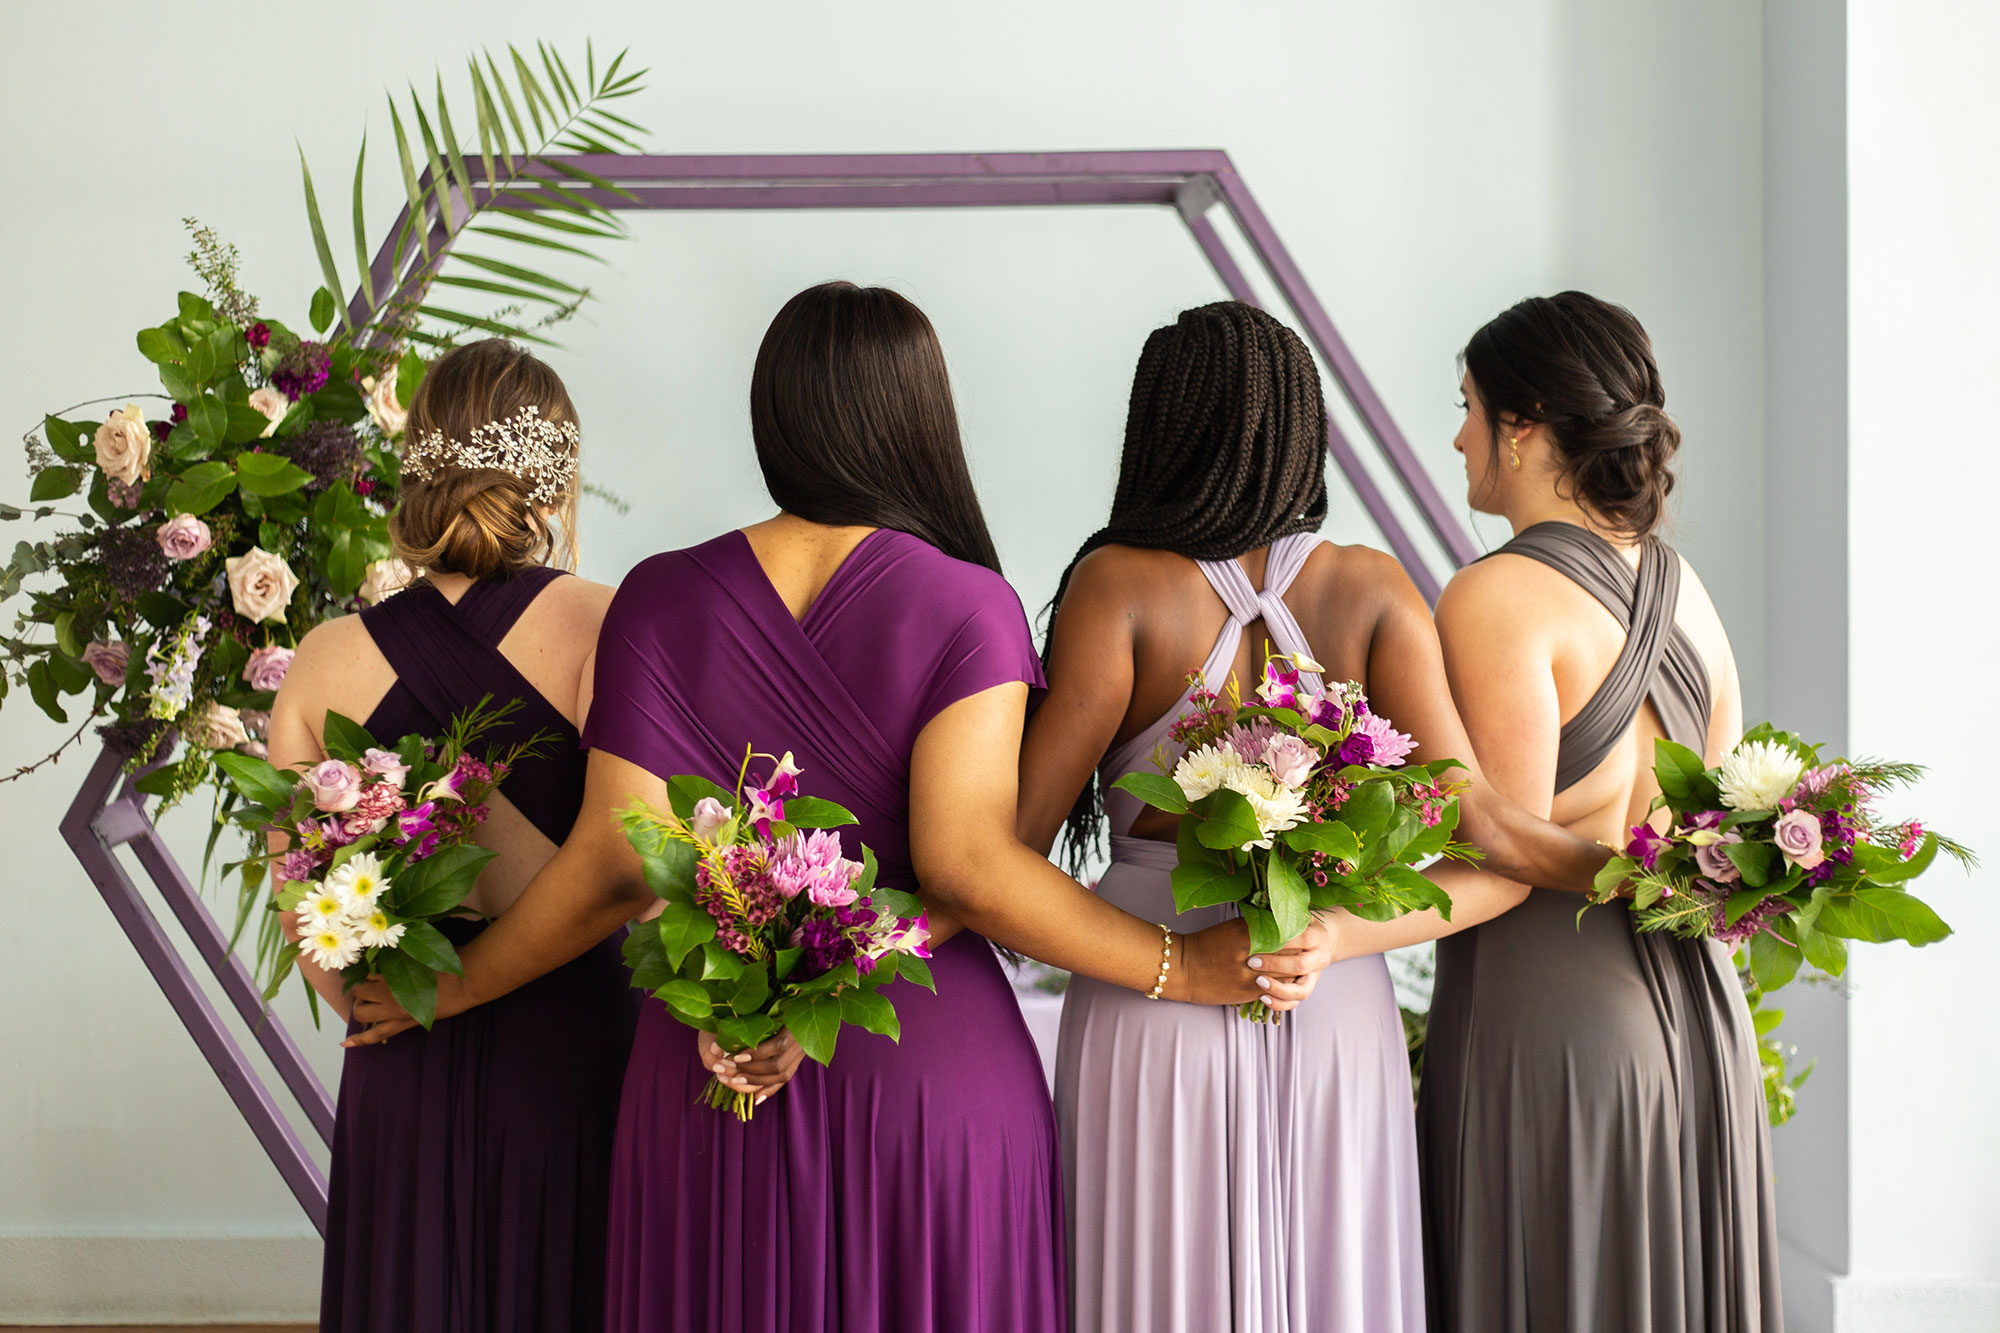 Henkaa fall wedding party dresses in purple and gray tones with bridesmaids holding bouquets